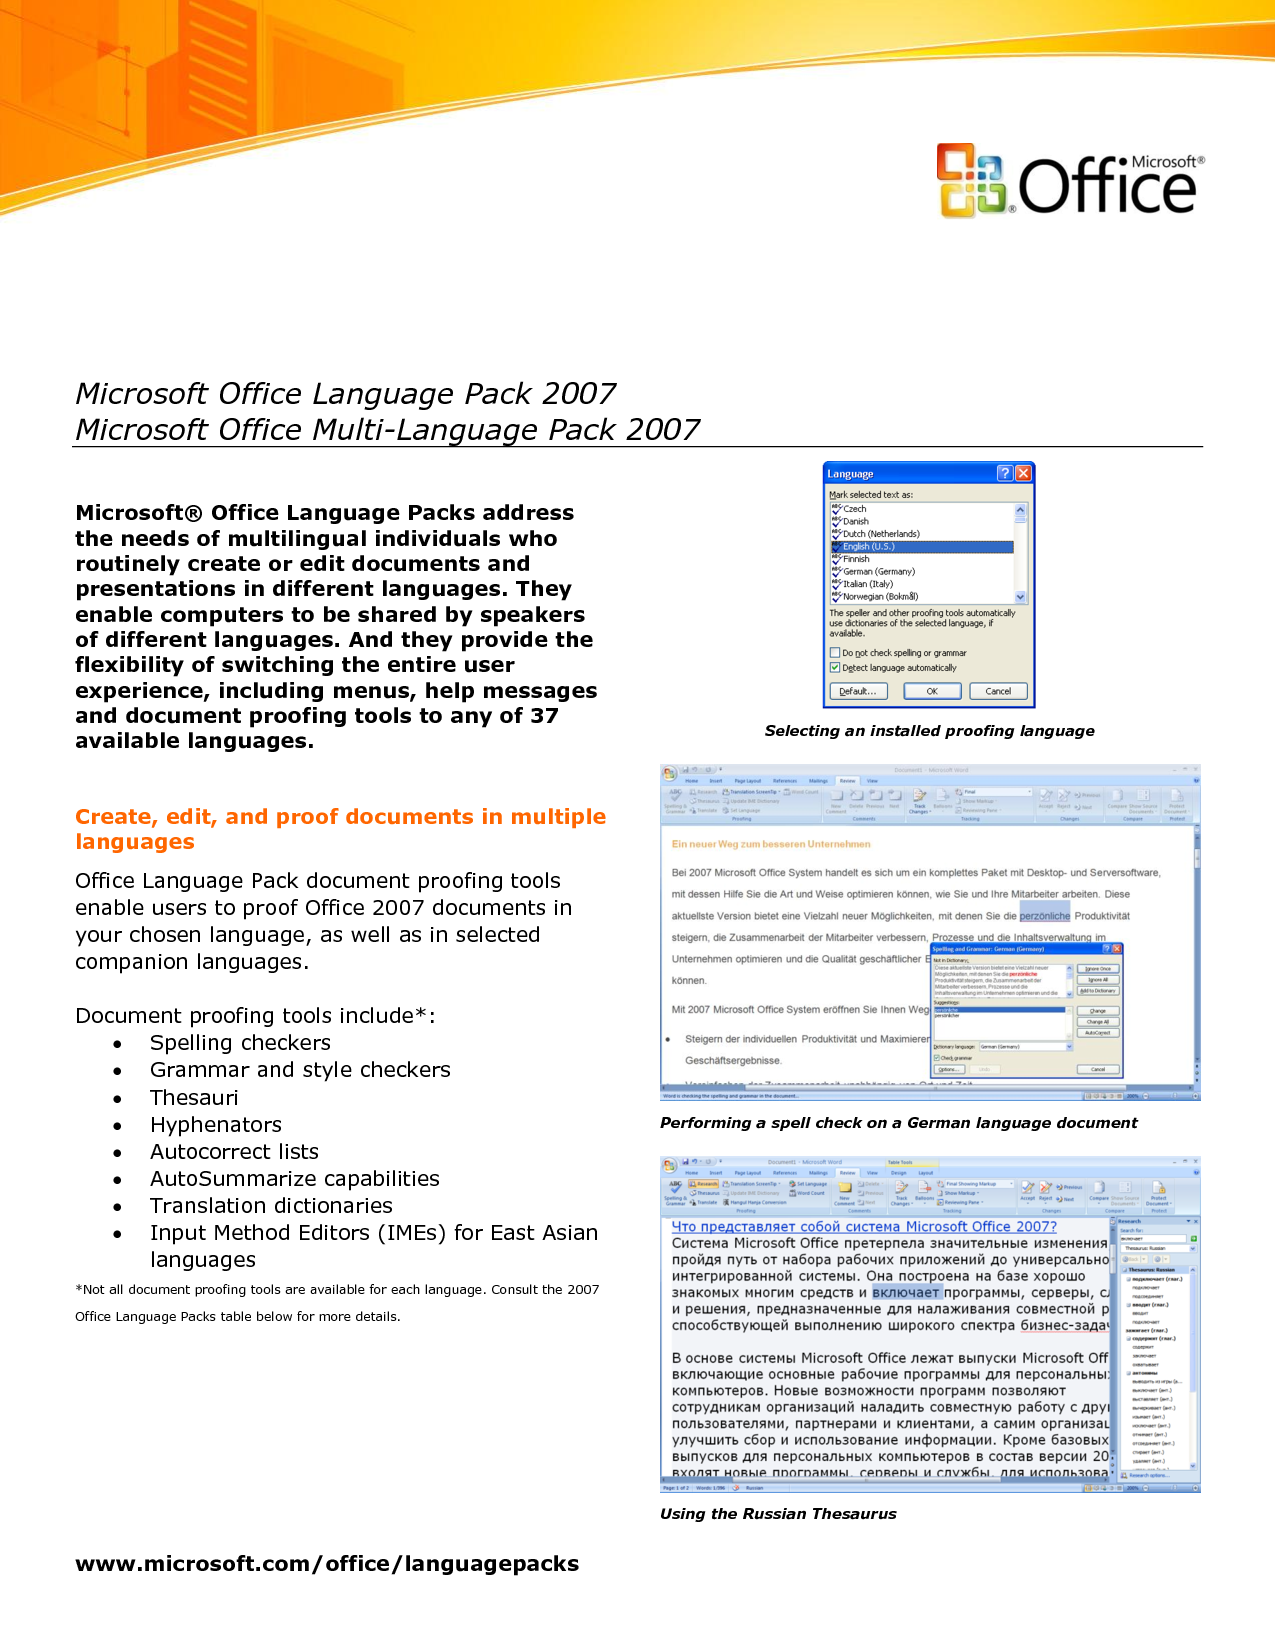 Free Microsoft Office Templates Download Free Microsoft Office Templates  Download, Word 2013 Free Templates, Microsoft Office Templates Not  Downloading, ...